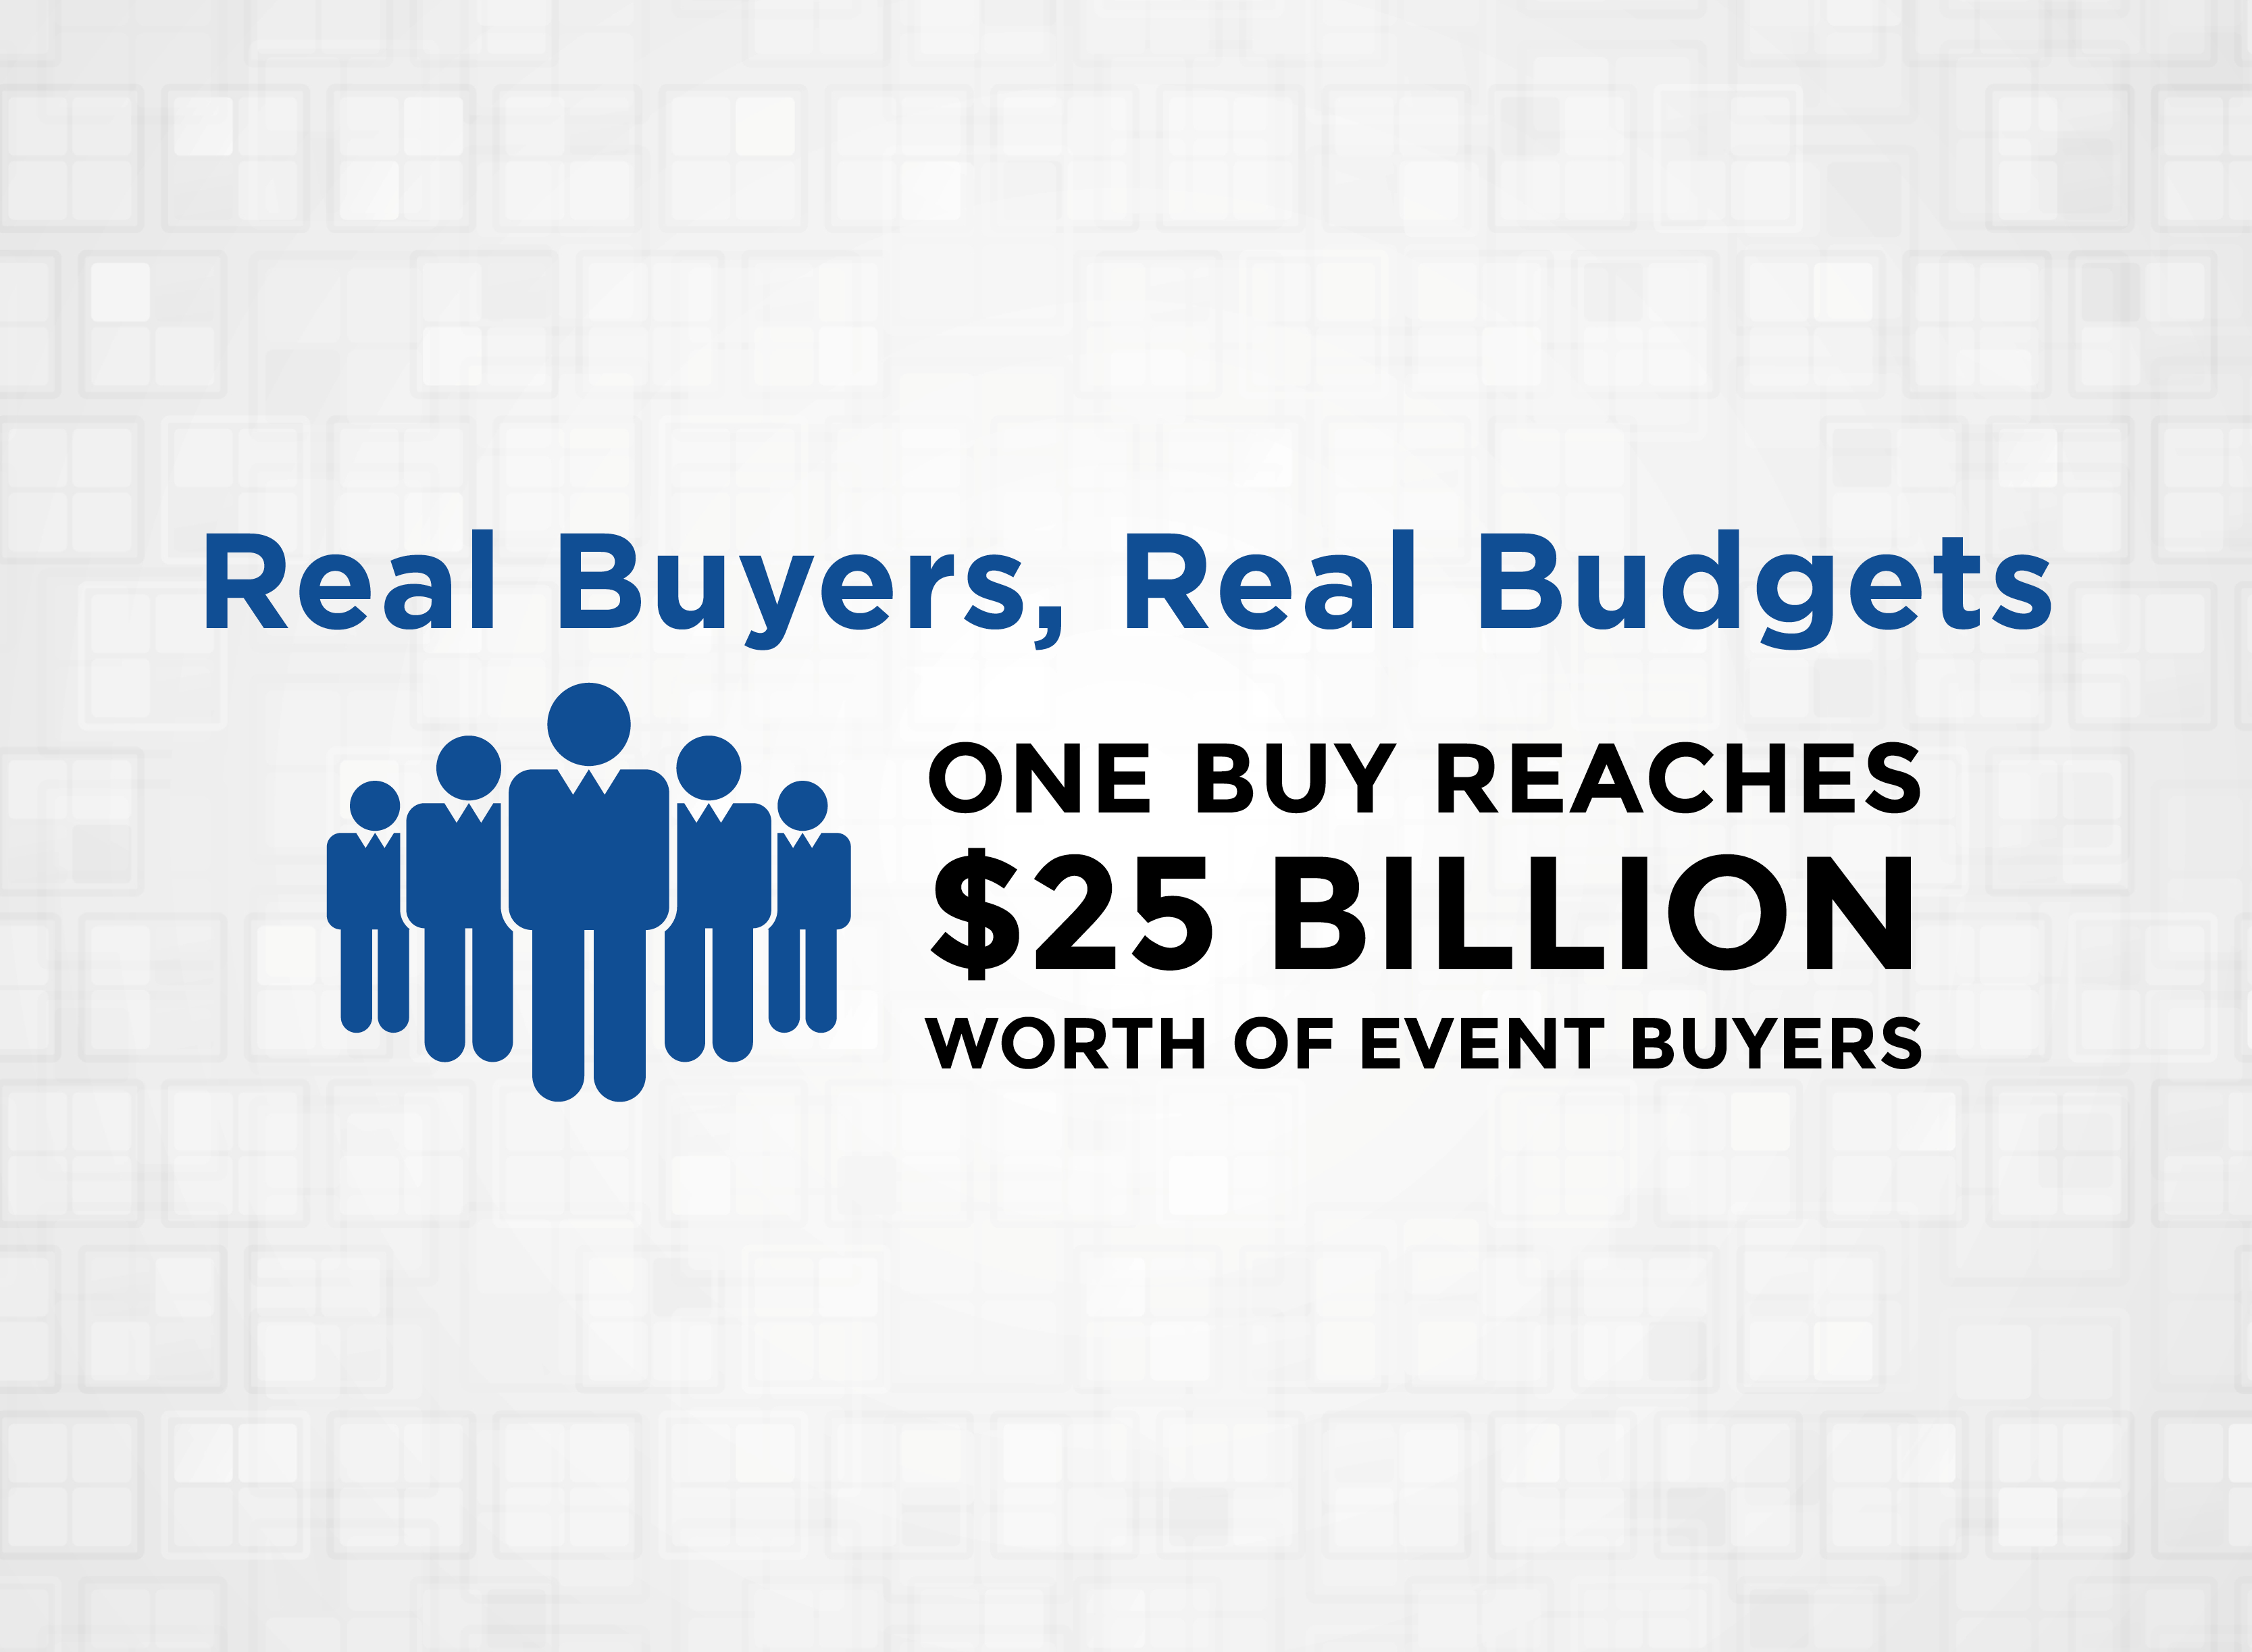 Real Buyers, Real Budgets